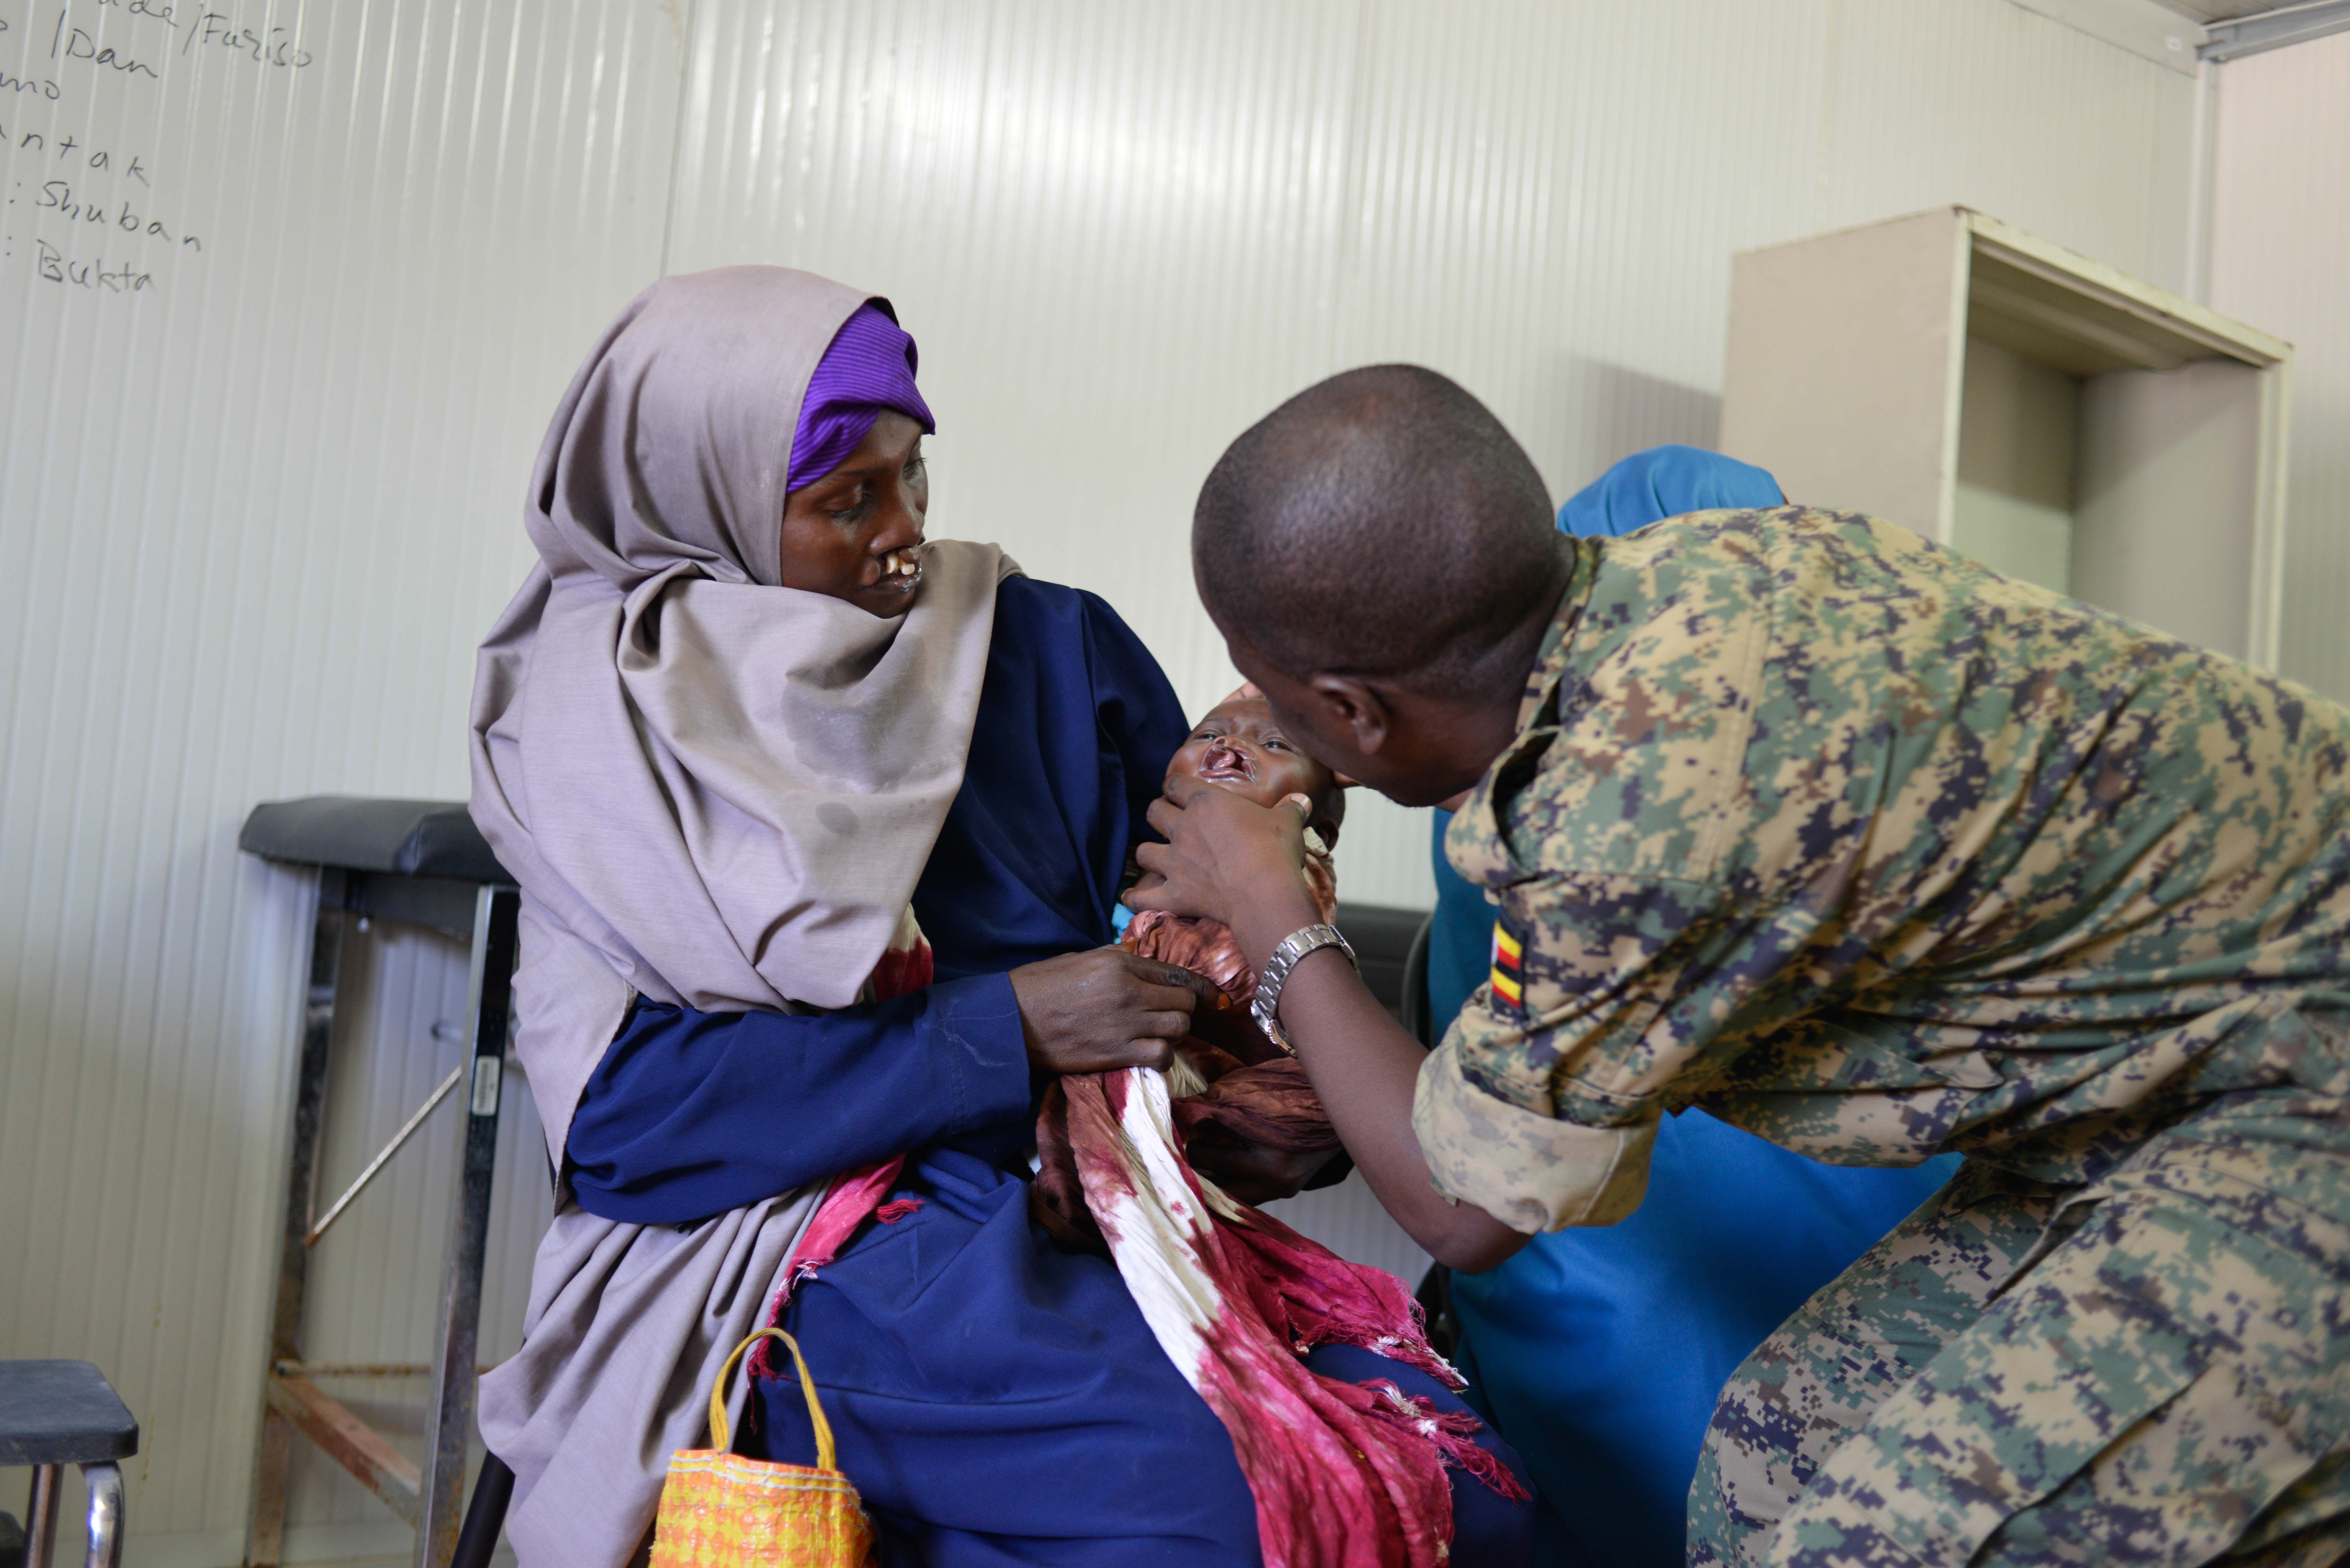 An AMISOM paramedic checks a baby before his surgery in Mogadishu, Somalia, on October 31, 2016. Children born with a cleft lip have a  congenital defect that prevents them talking, eating and breathing properly. Medical teams from AMISOM, and partners from the international cleft lip charity Smile Train and Bancroft Global Development, conducted the cleft lip and cleft palate surgery. AMISOM Photo / Omar Abdisalan